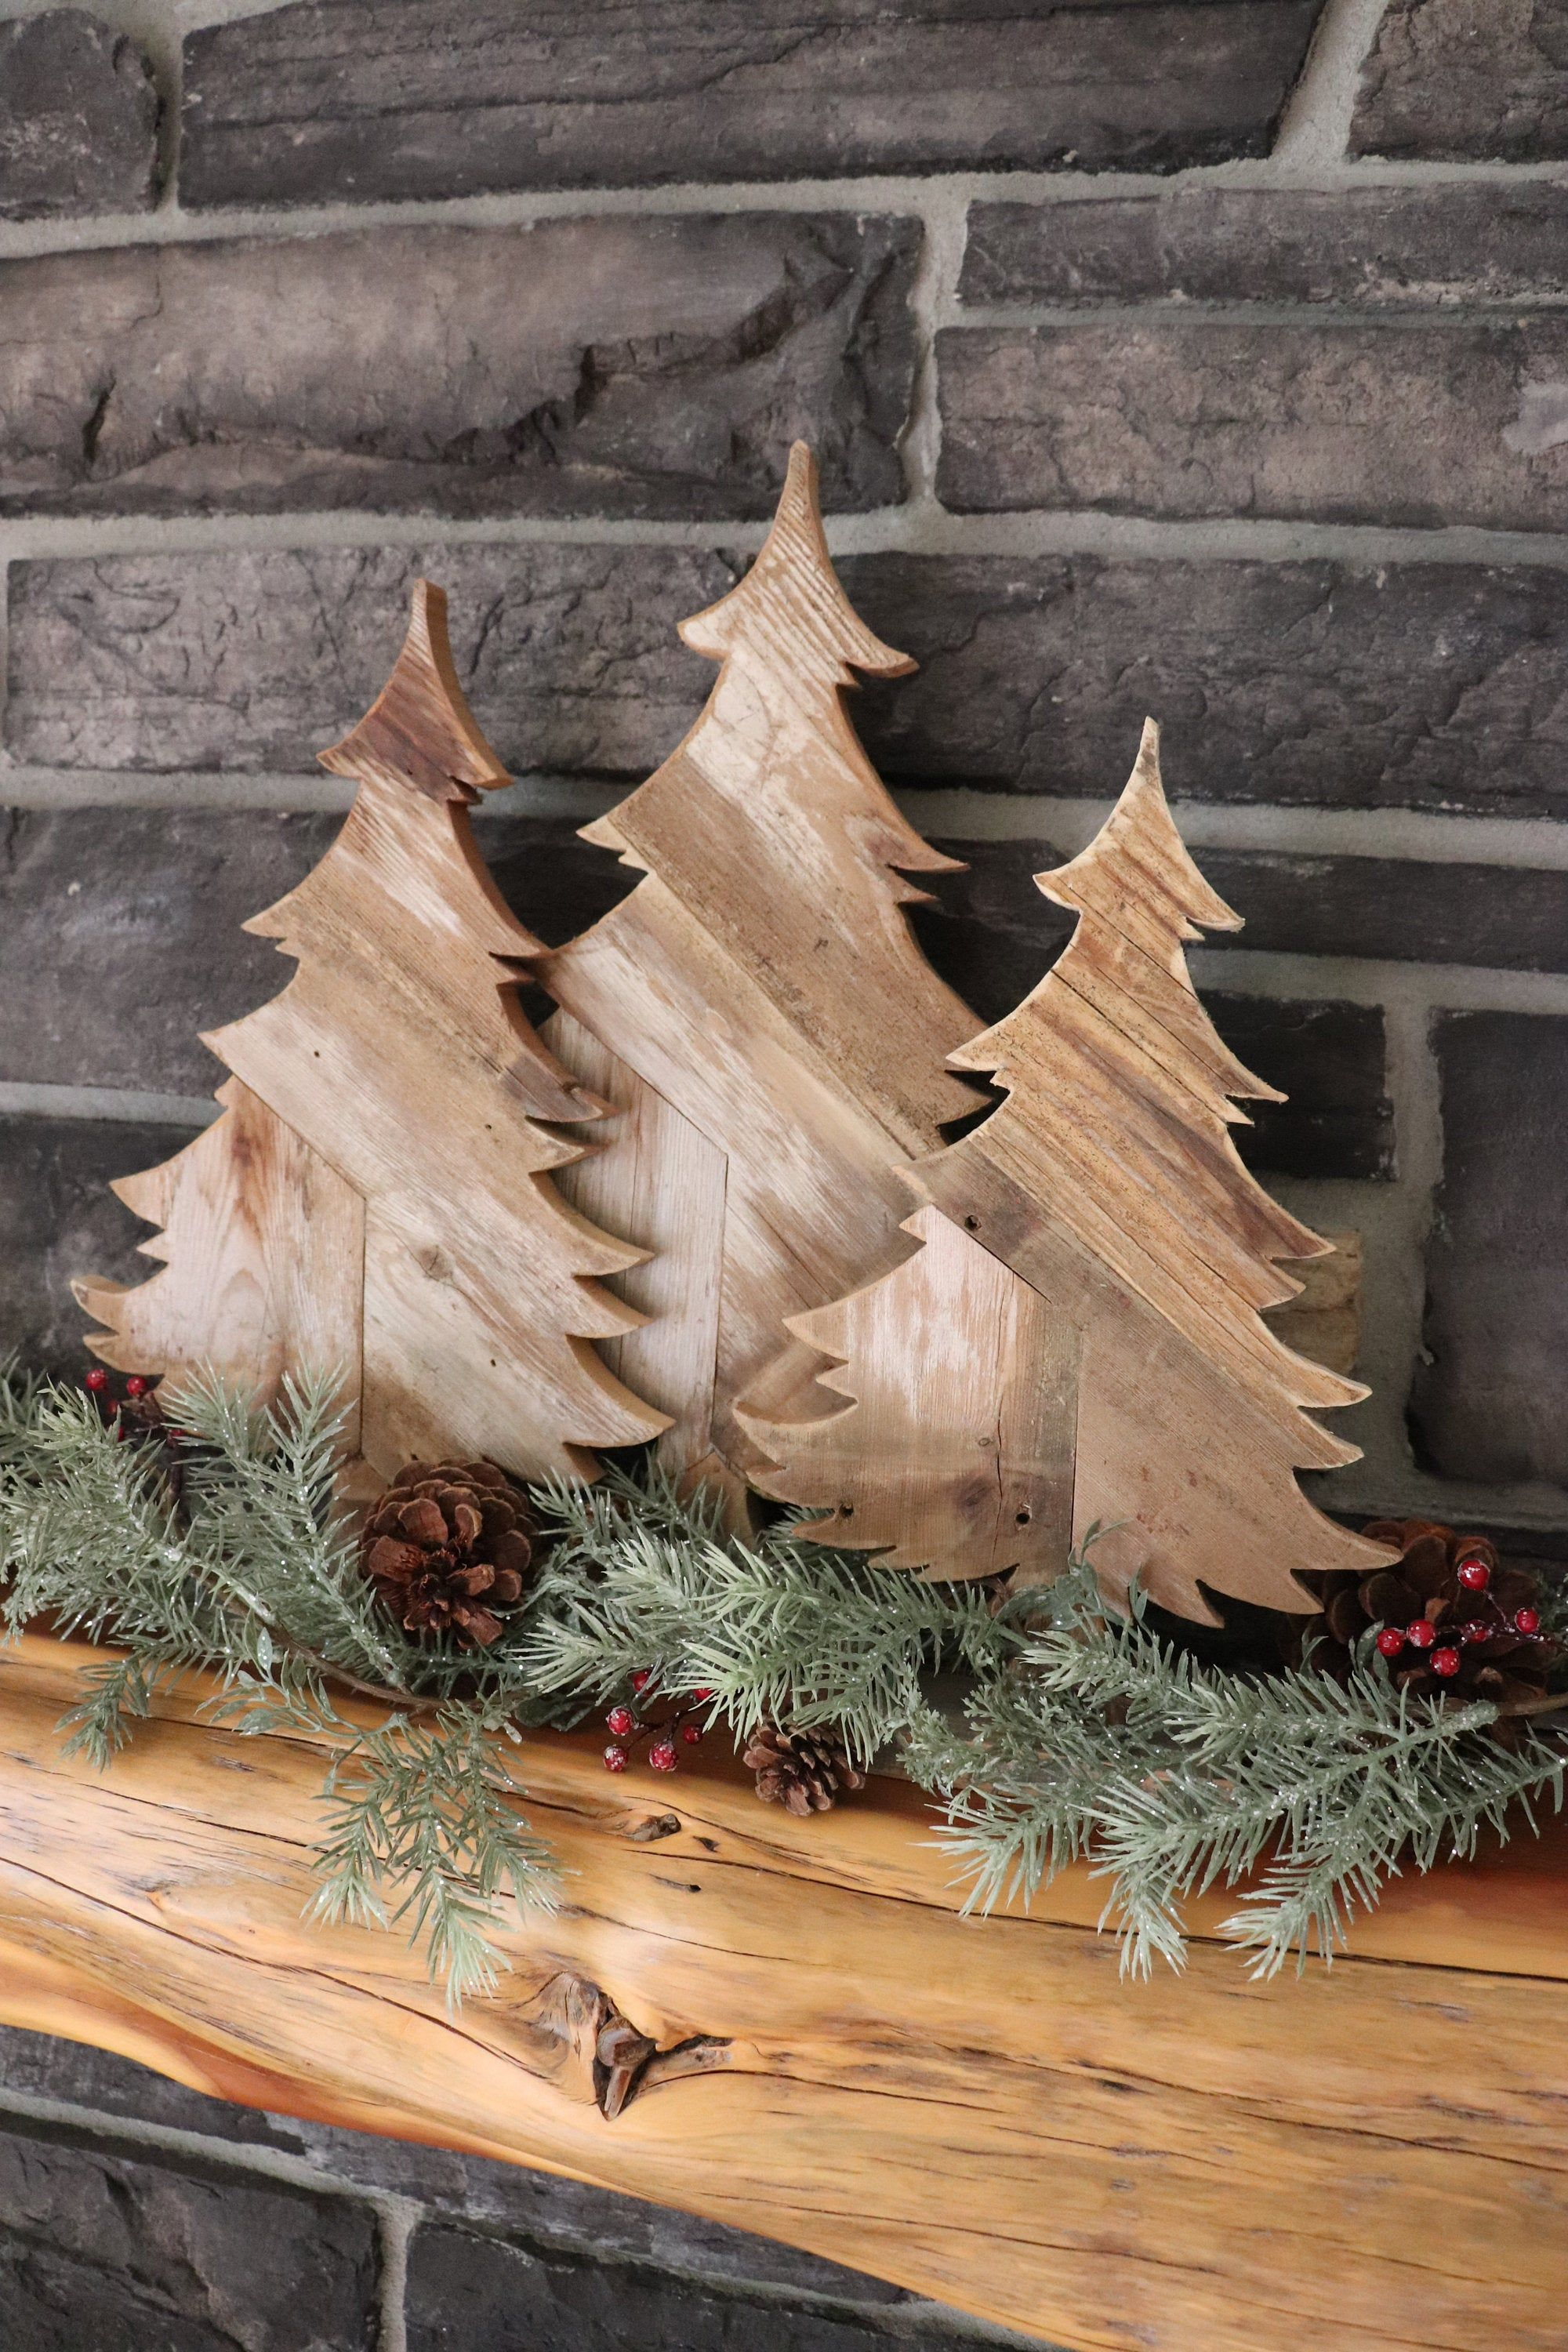 Rustic Pine Tree made from Barn Wood/Weathered Reclaimed, Multi Sizes, Mounted on Stand, Tabletop, Mantel, Book Shelf